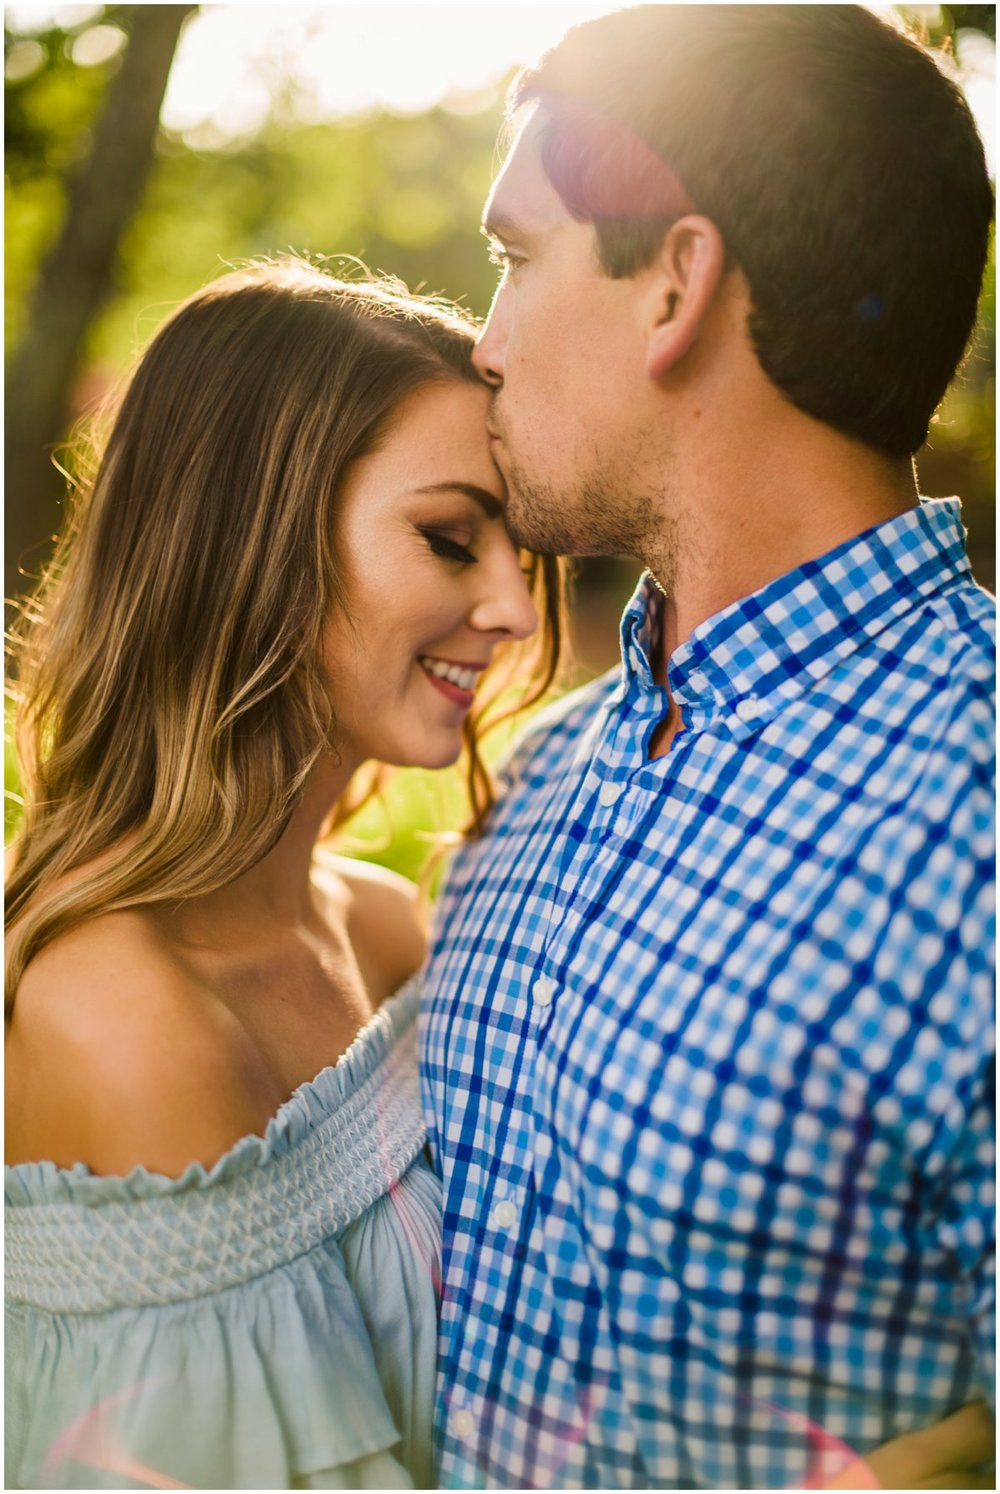 Summer Sedona Engagement Photos at Tlaquepaque and Oak Creek Canyon.